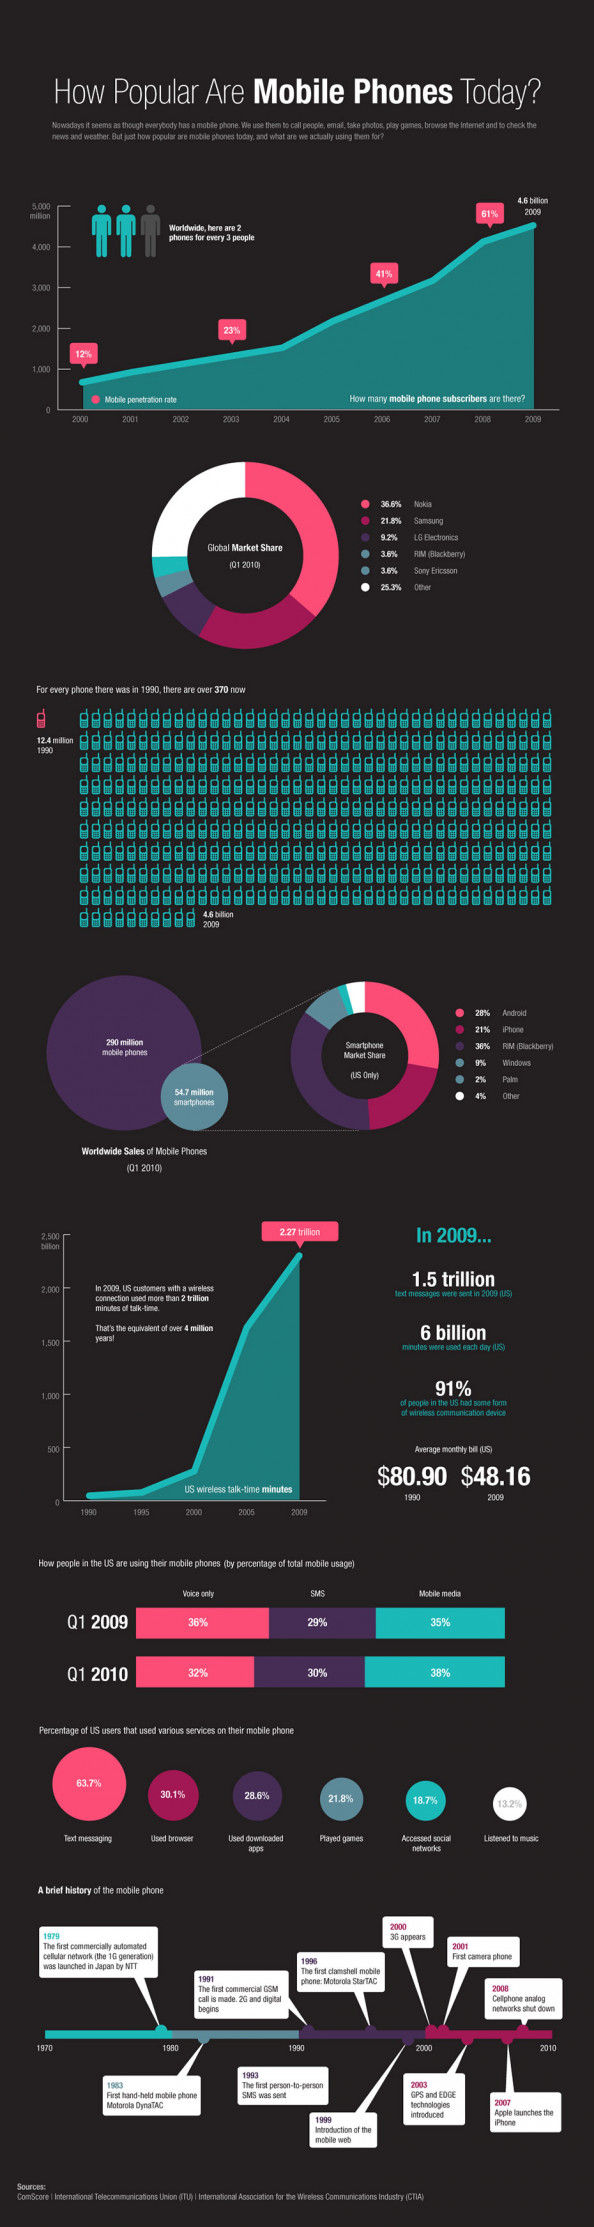 How Popular Are Mobile Phones Today? Infographic